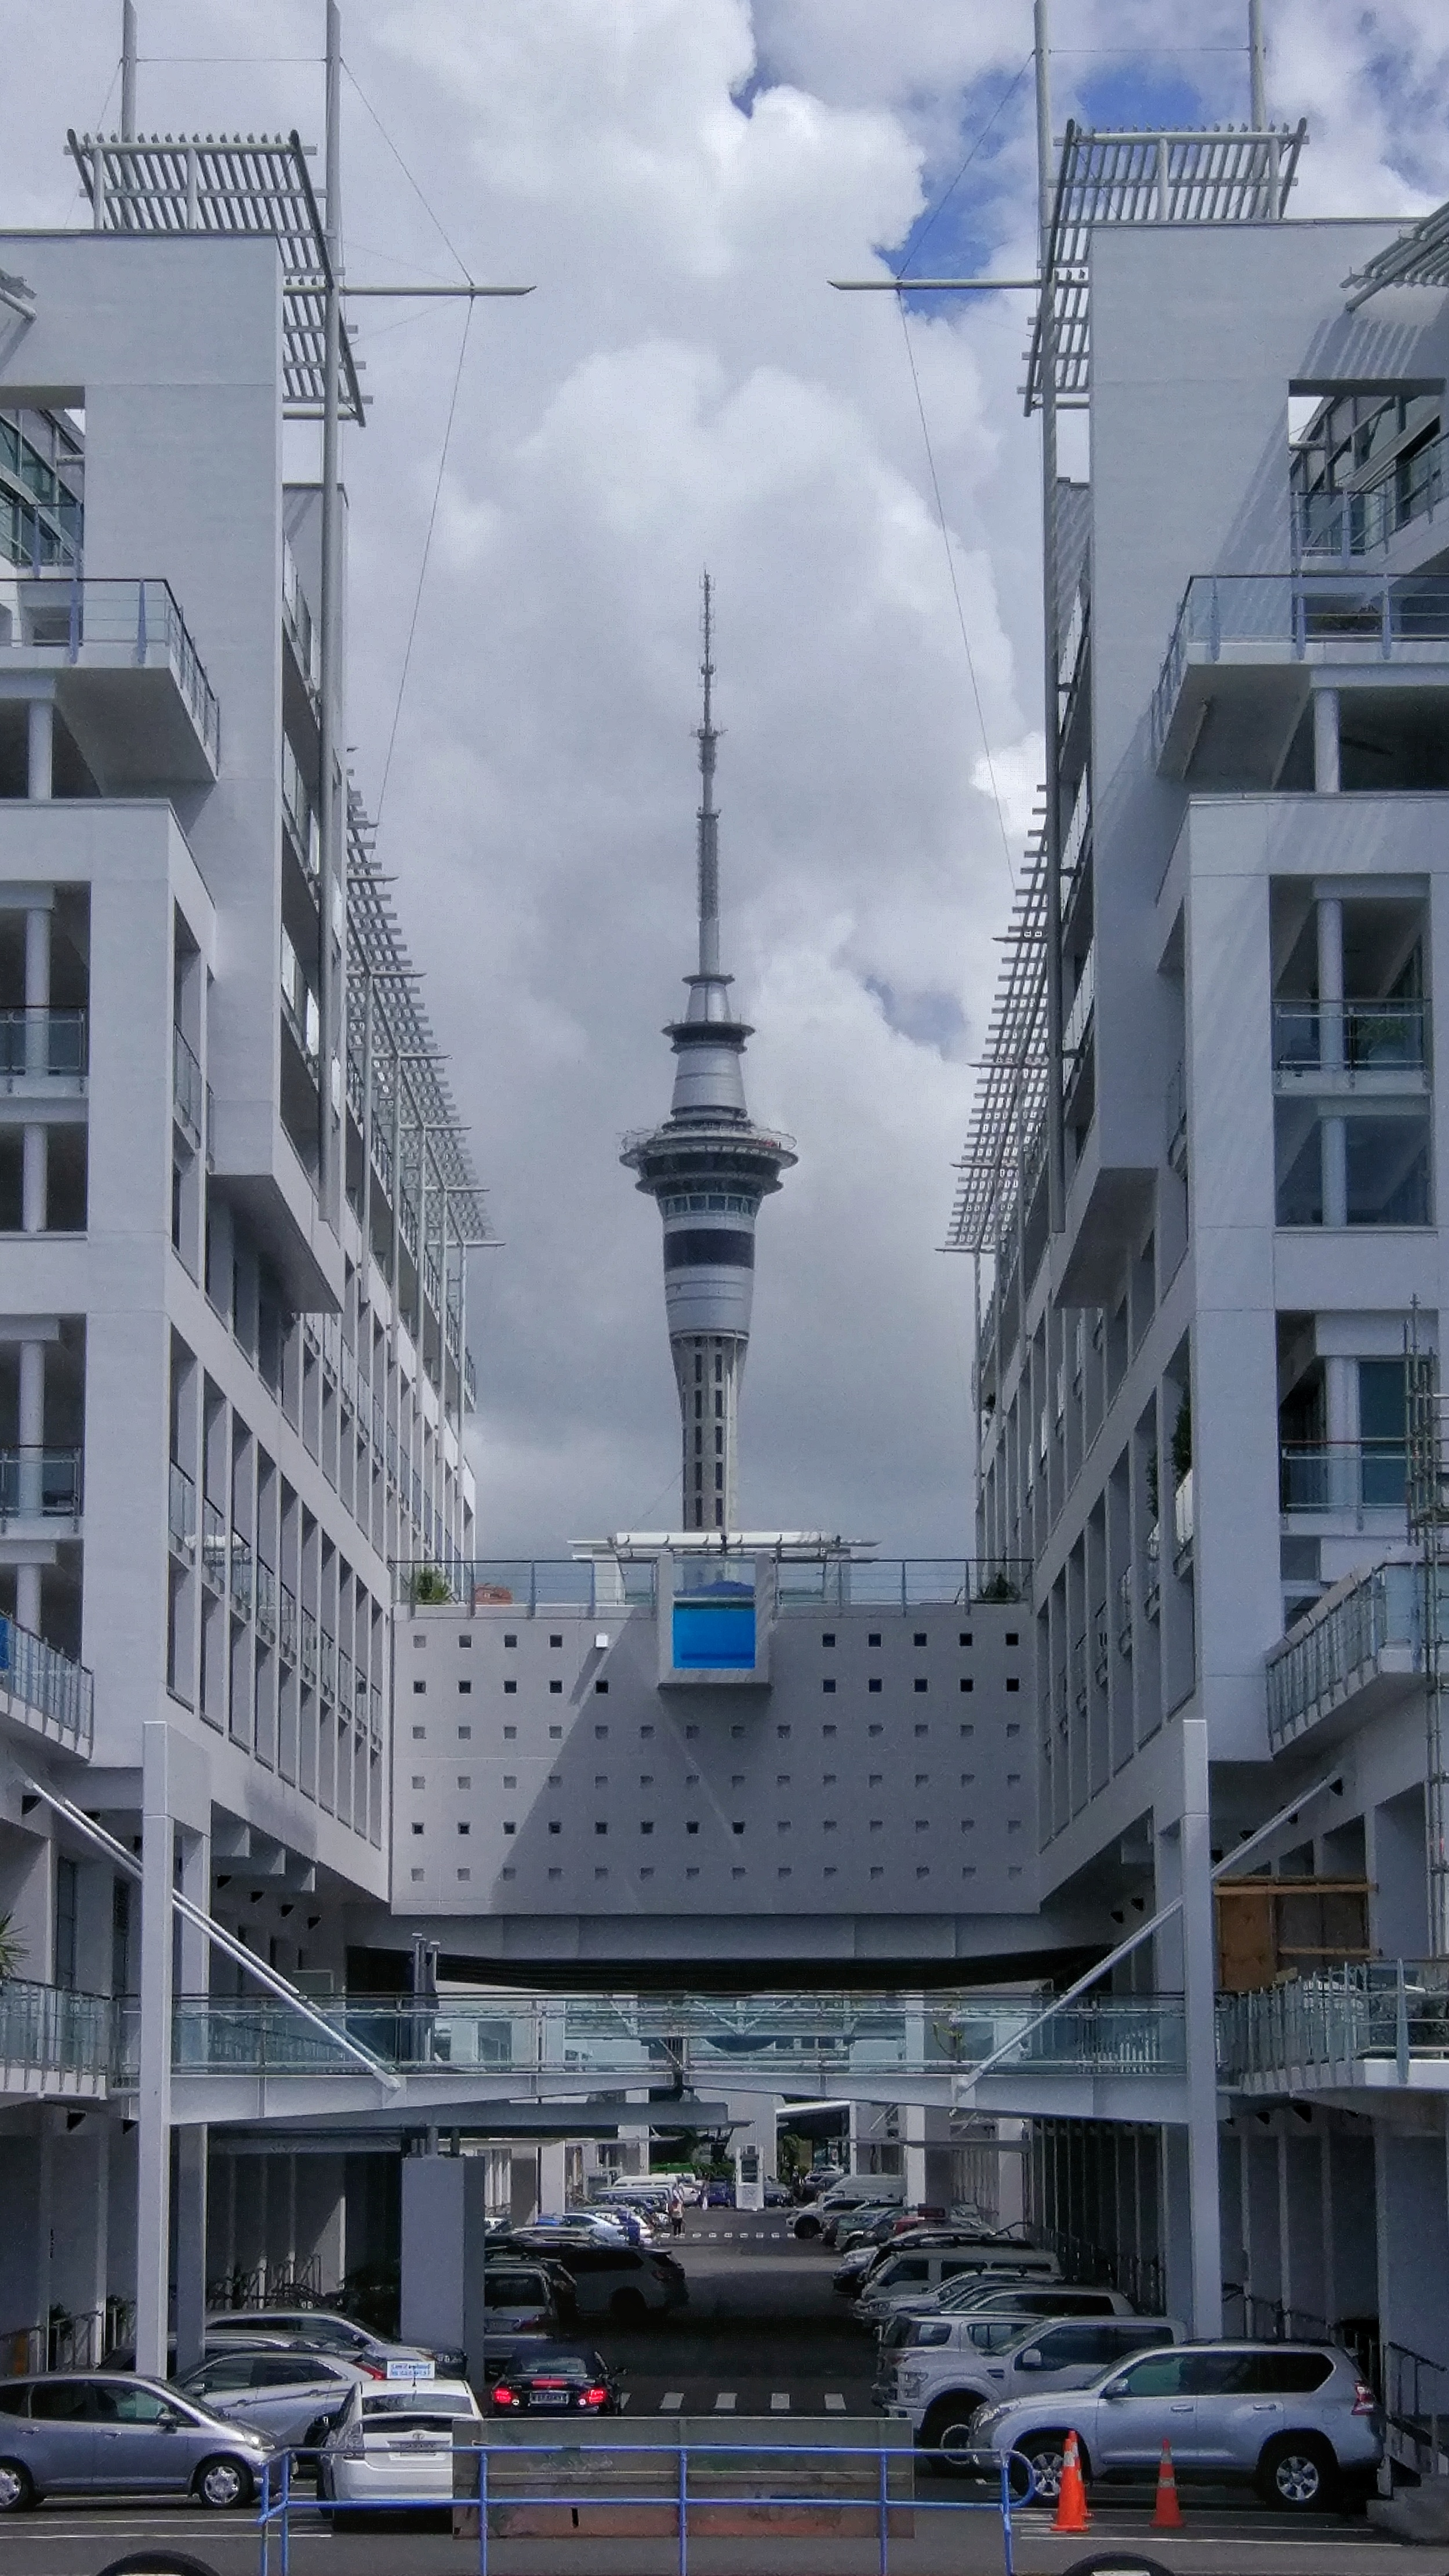 Sky tower AUckland in perfect symmetry with the hilton hotel!